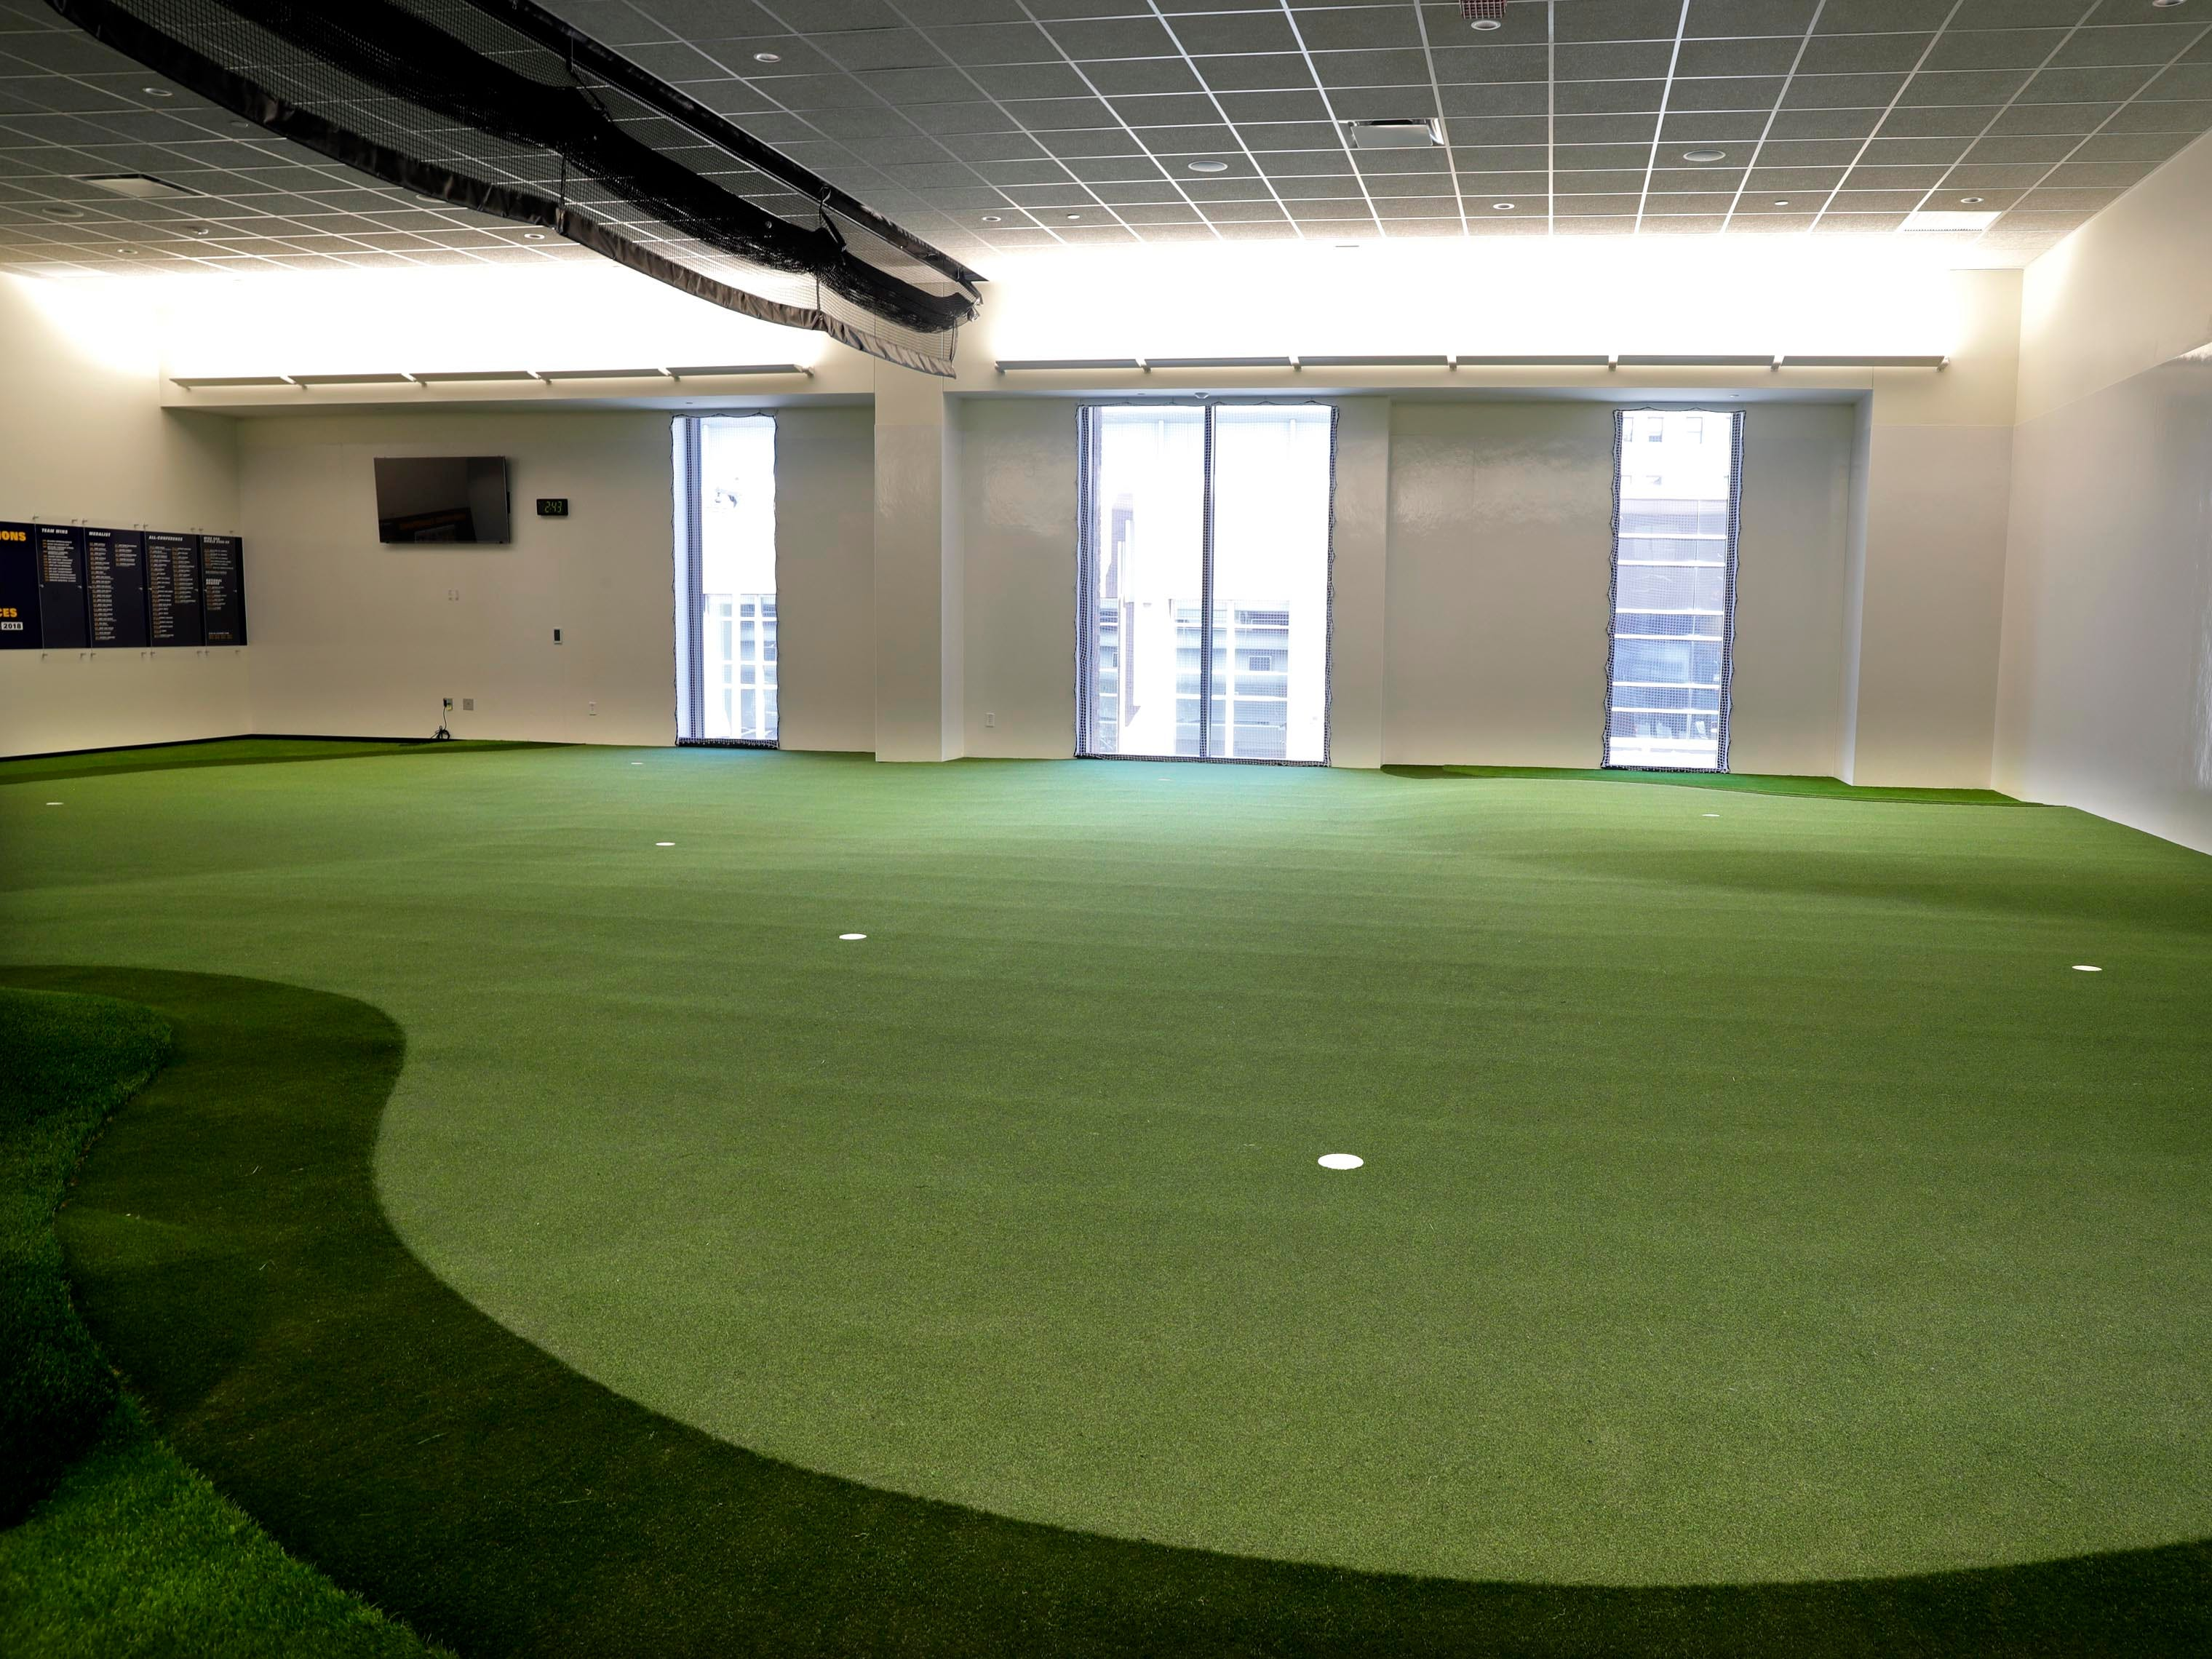 The Athletic and Human Performance Research Center has a year-round putting green and swing analysis equipment to the golf team improve throughout the year.